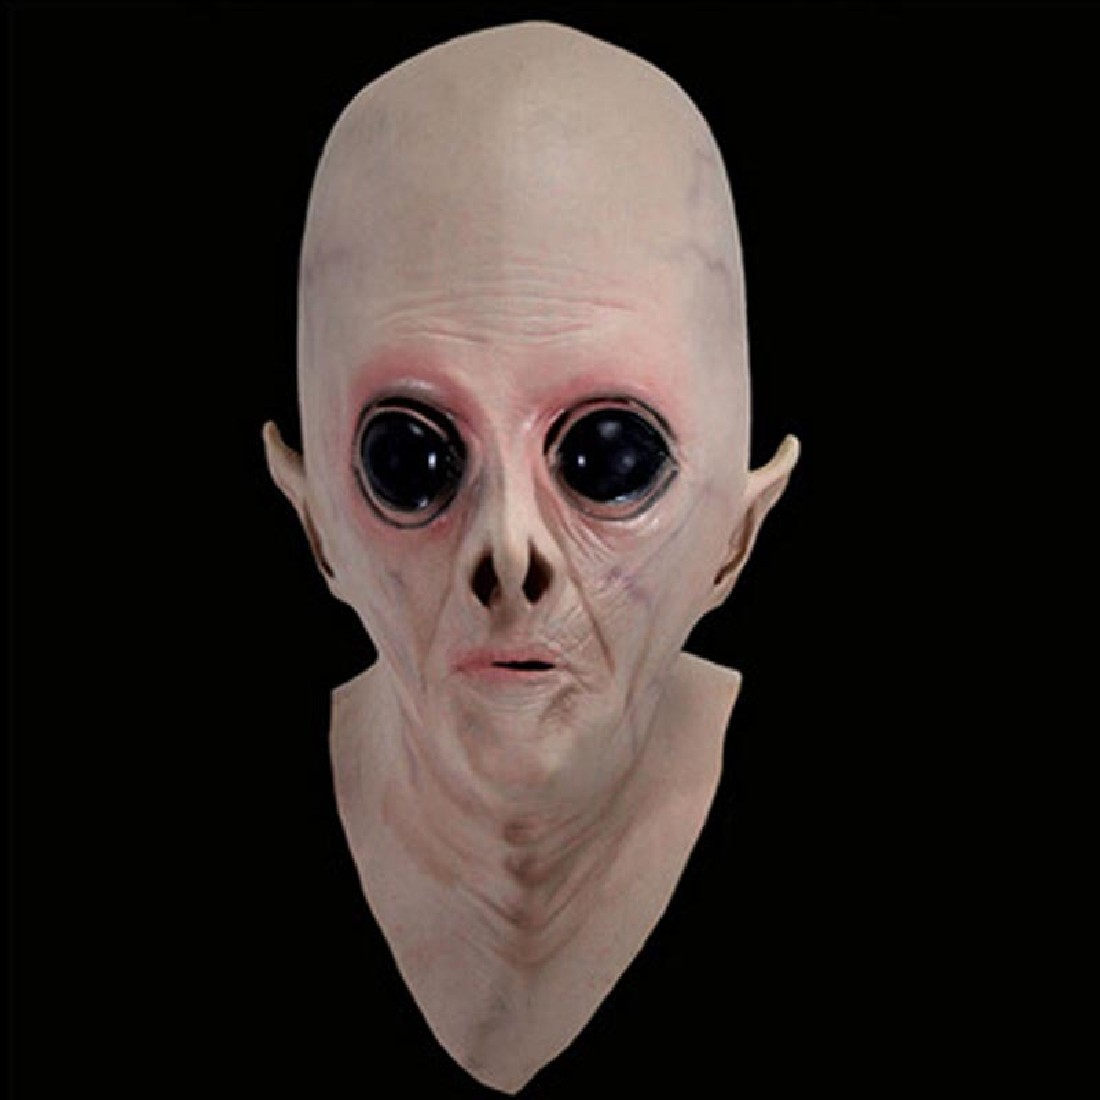 Aliexpress.com : Buy Funny Scary Silicone Face Mask Alien Ufo ...